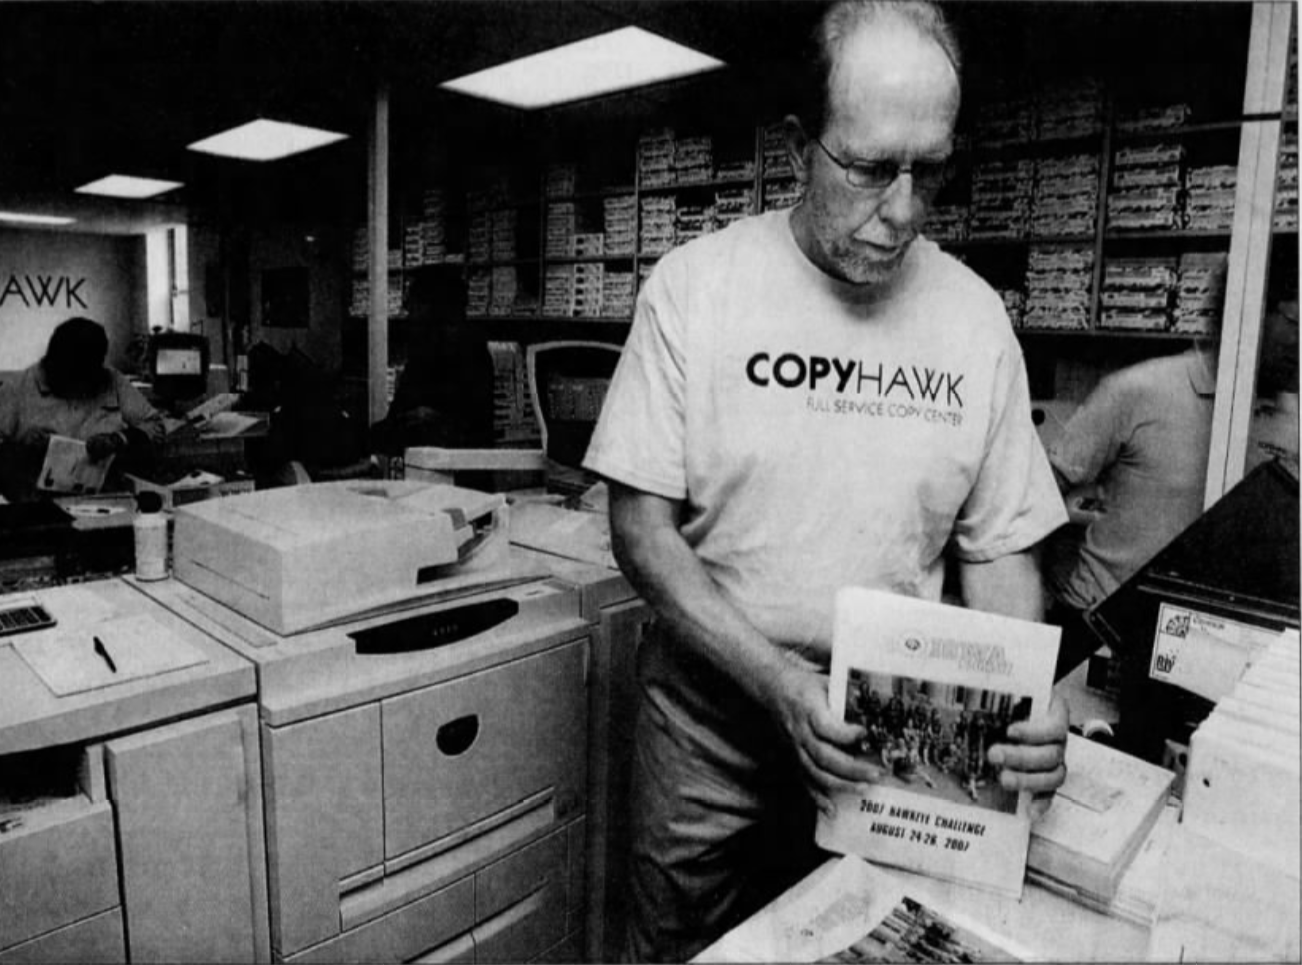 """Freshman Rep. Dave Loebsack, D-Mount Vernon, straightens a stack of copies while working Thursday, Aug. 23, 2007, at the CopyHawk center in the Iowa Memorial Union. The Congressman has been visiting businesses in his district, trying out various jobs for his """"take your congressman to work week."""""""